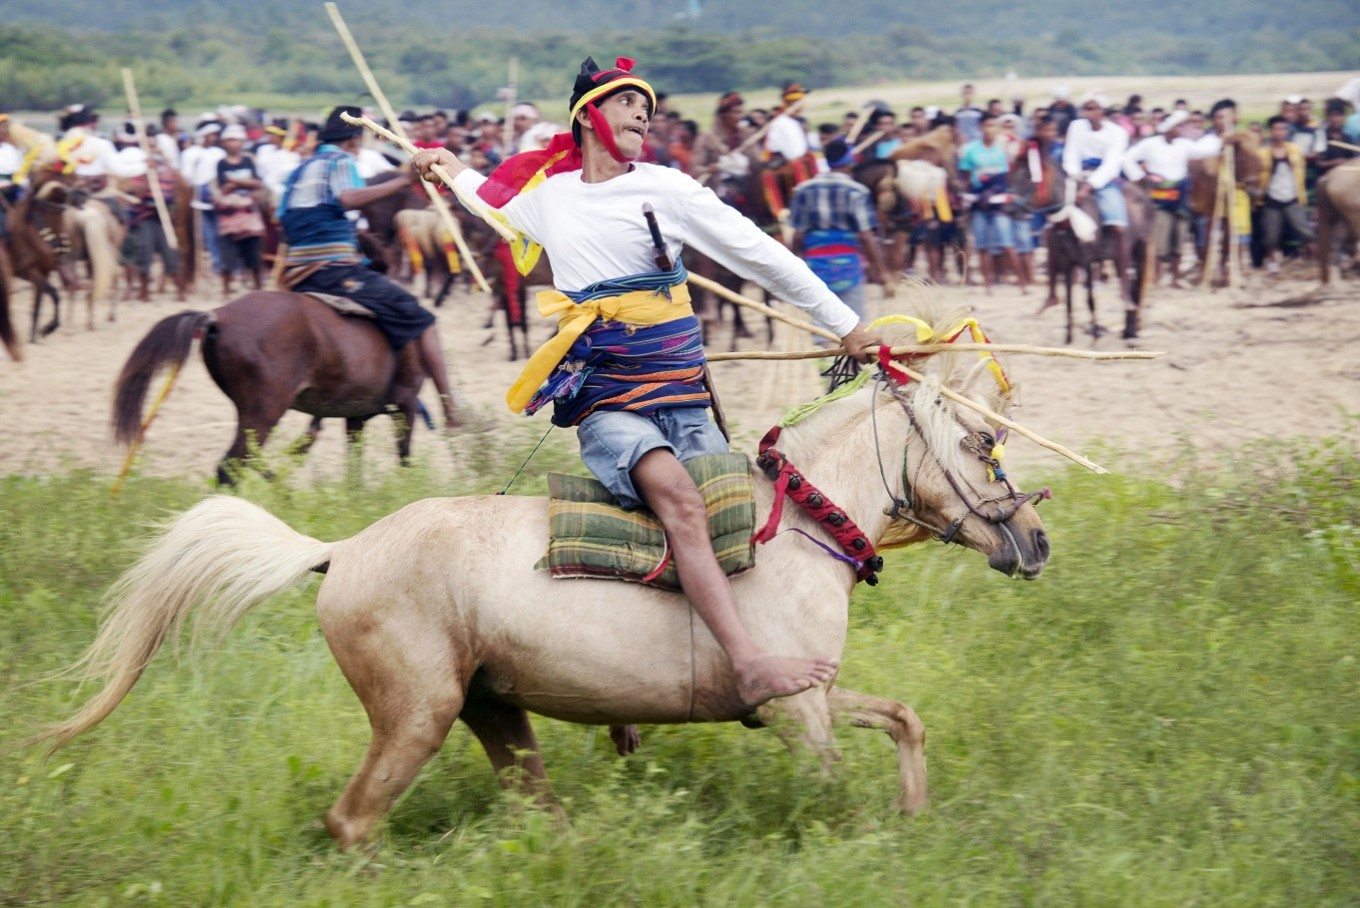 Acquired skills: Horse-riding skill is a must during the Pasola ritual.